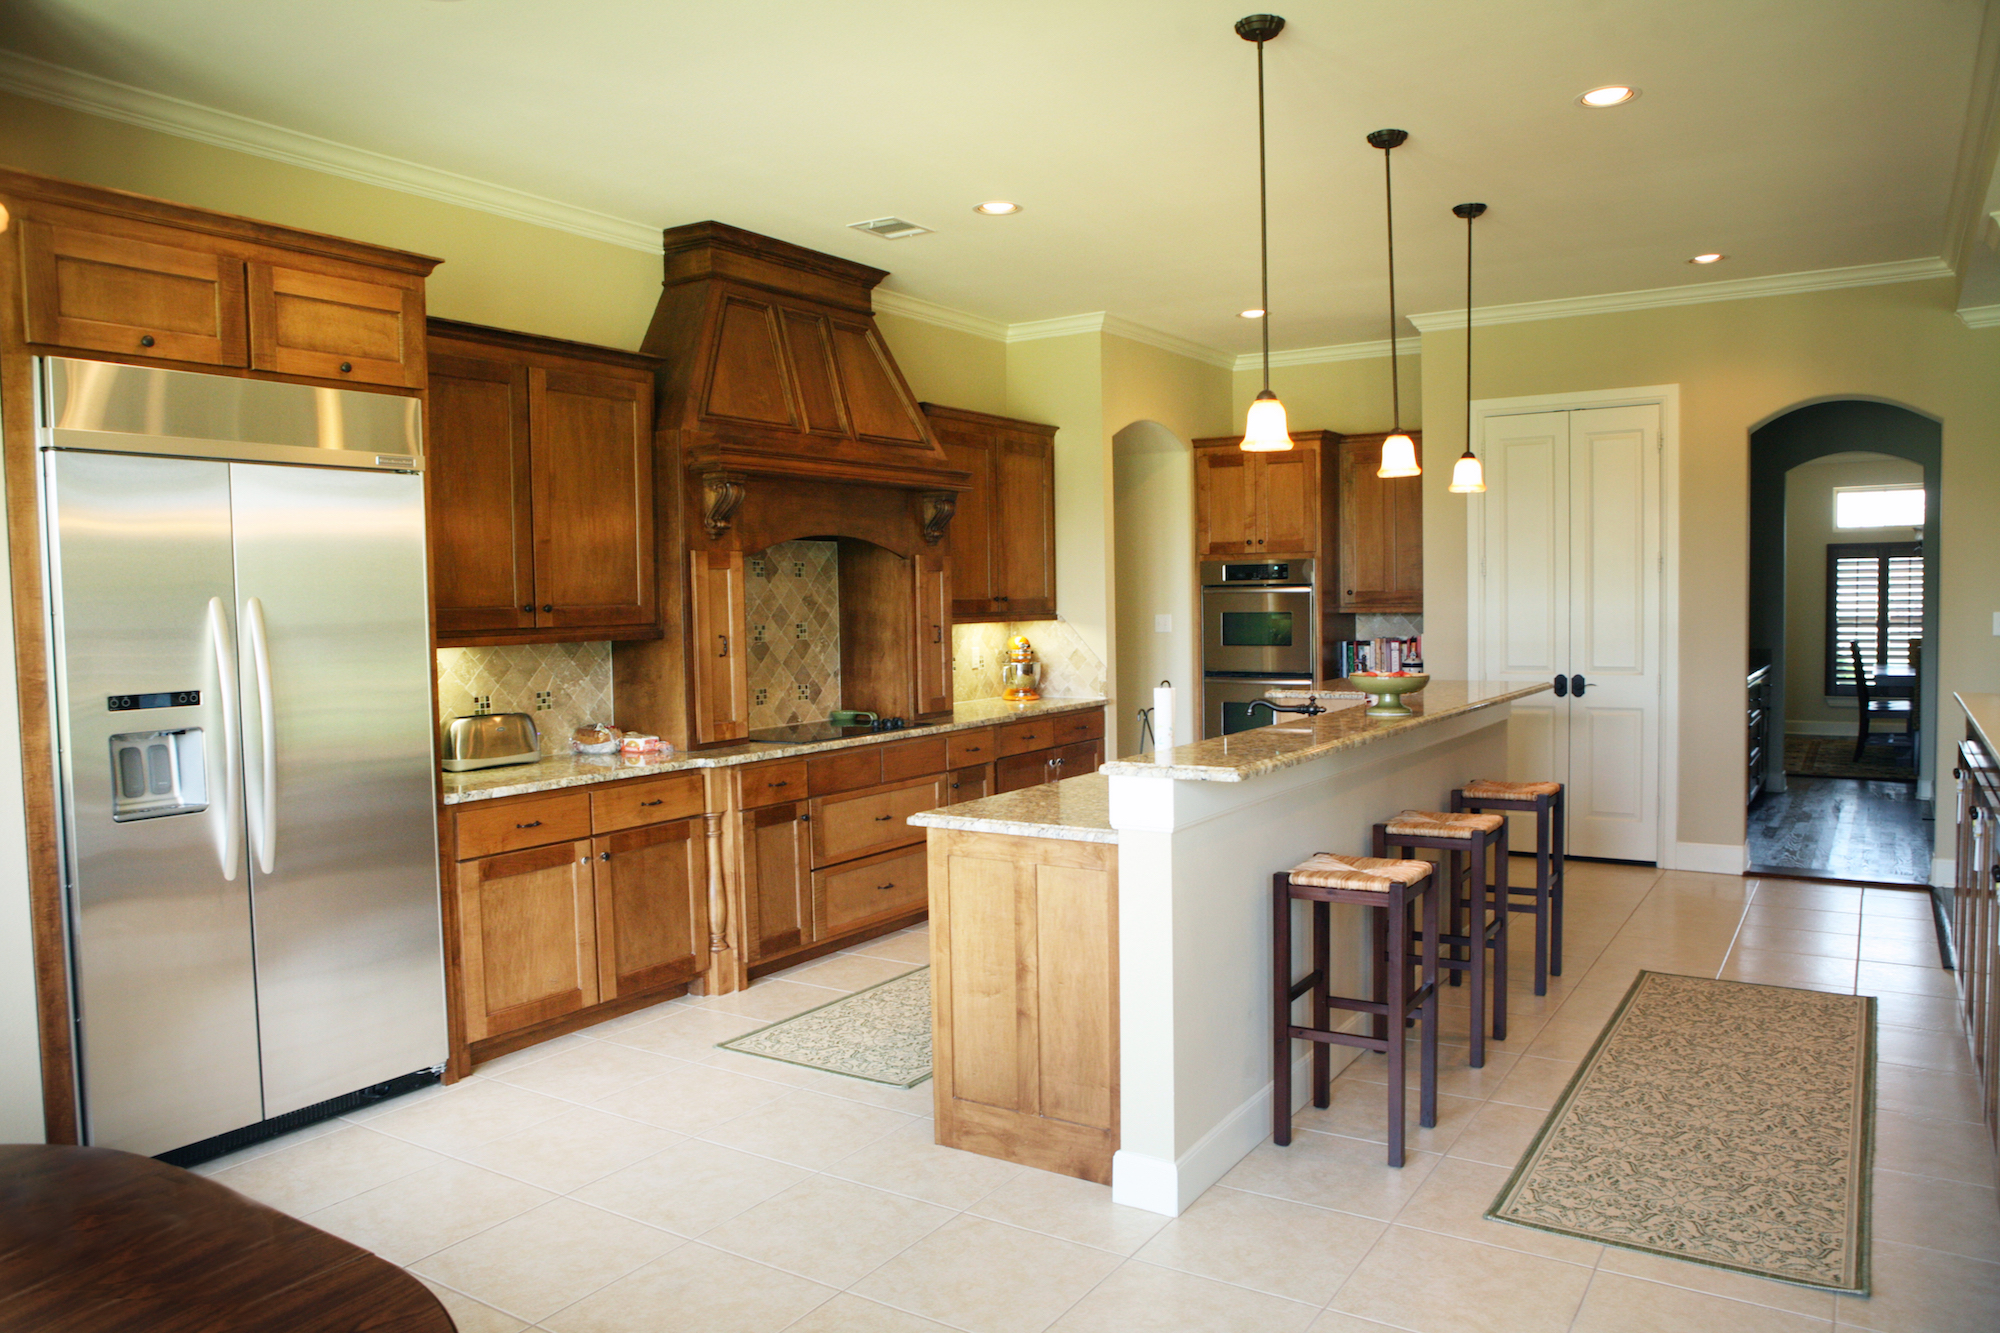 Hedgefield Homes Kitchen Design: Stained Custom Maple Kitchen with Stainless Appliances